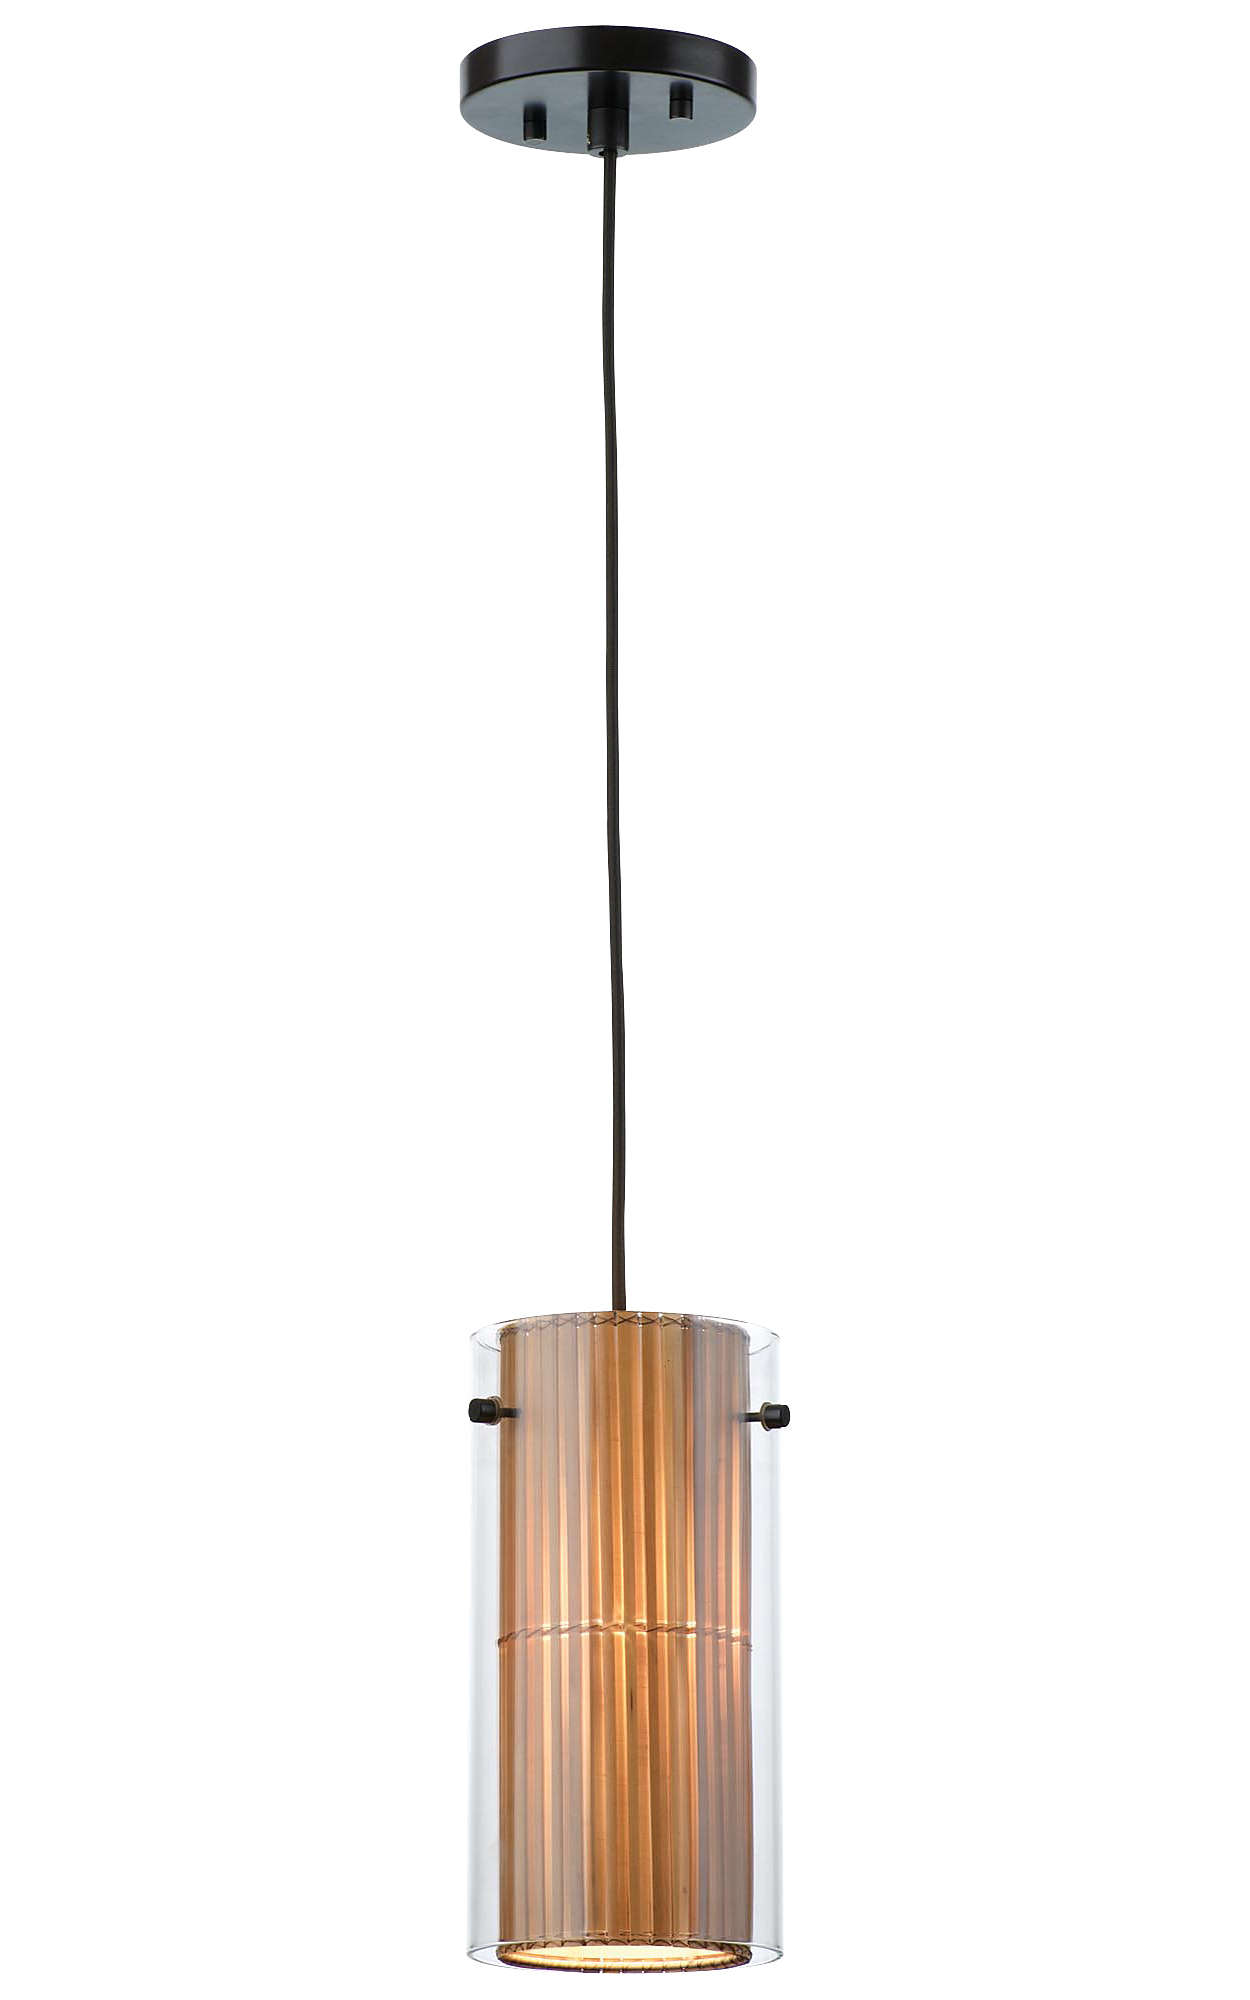 Hanalei Bay 1-light Pendant, Merlot Bronze finish